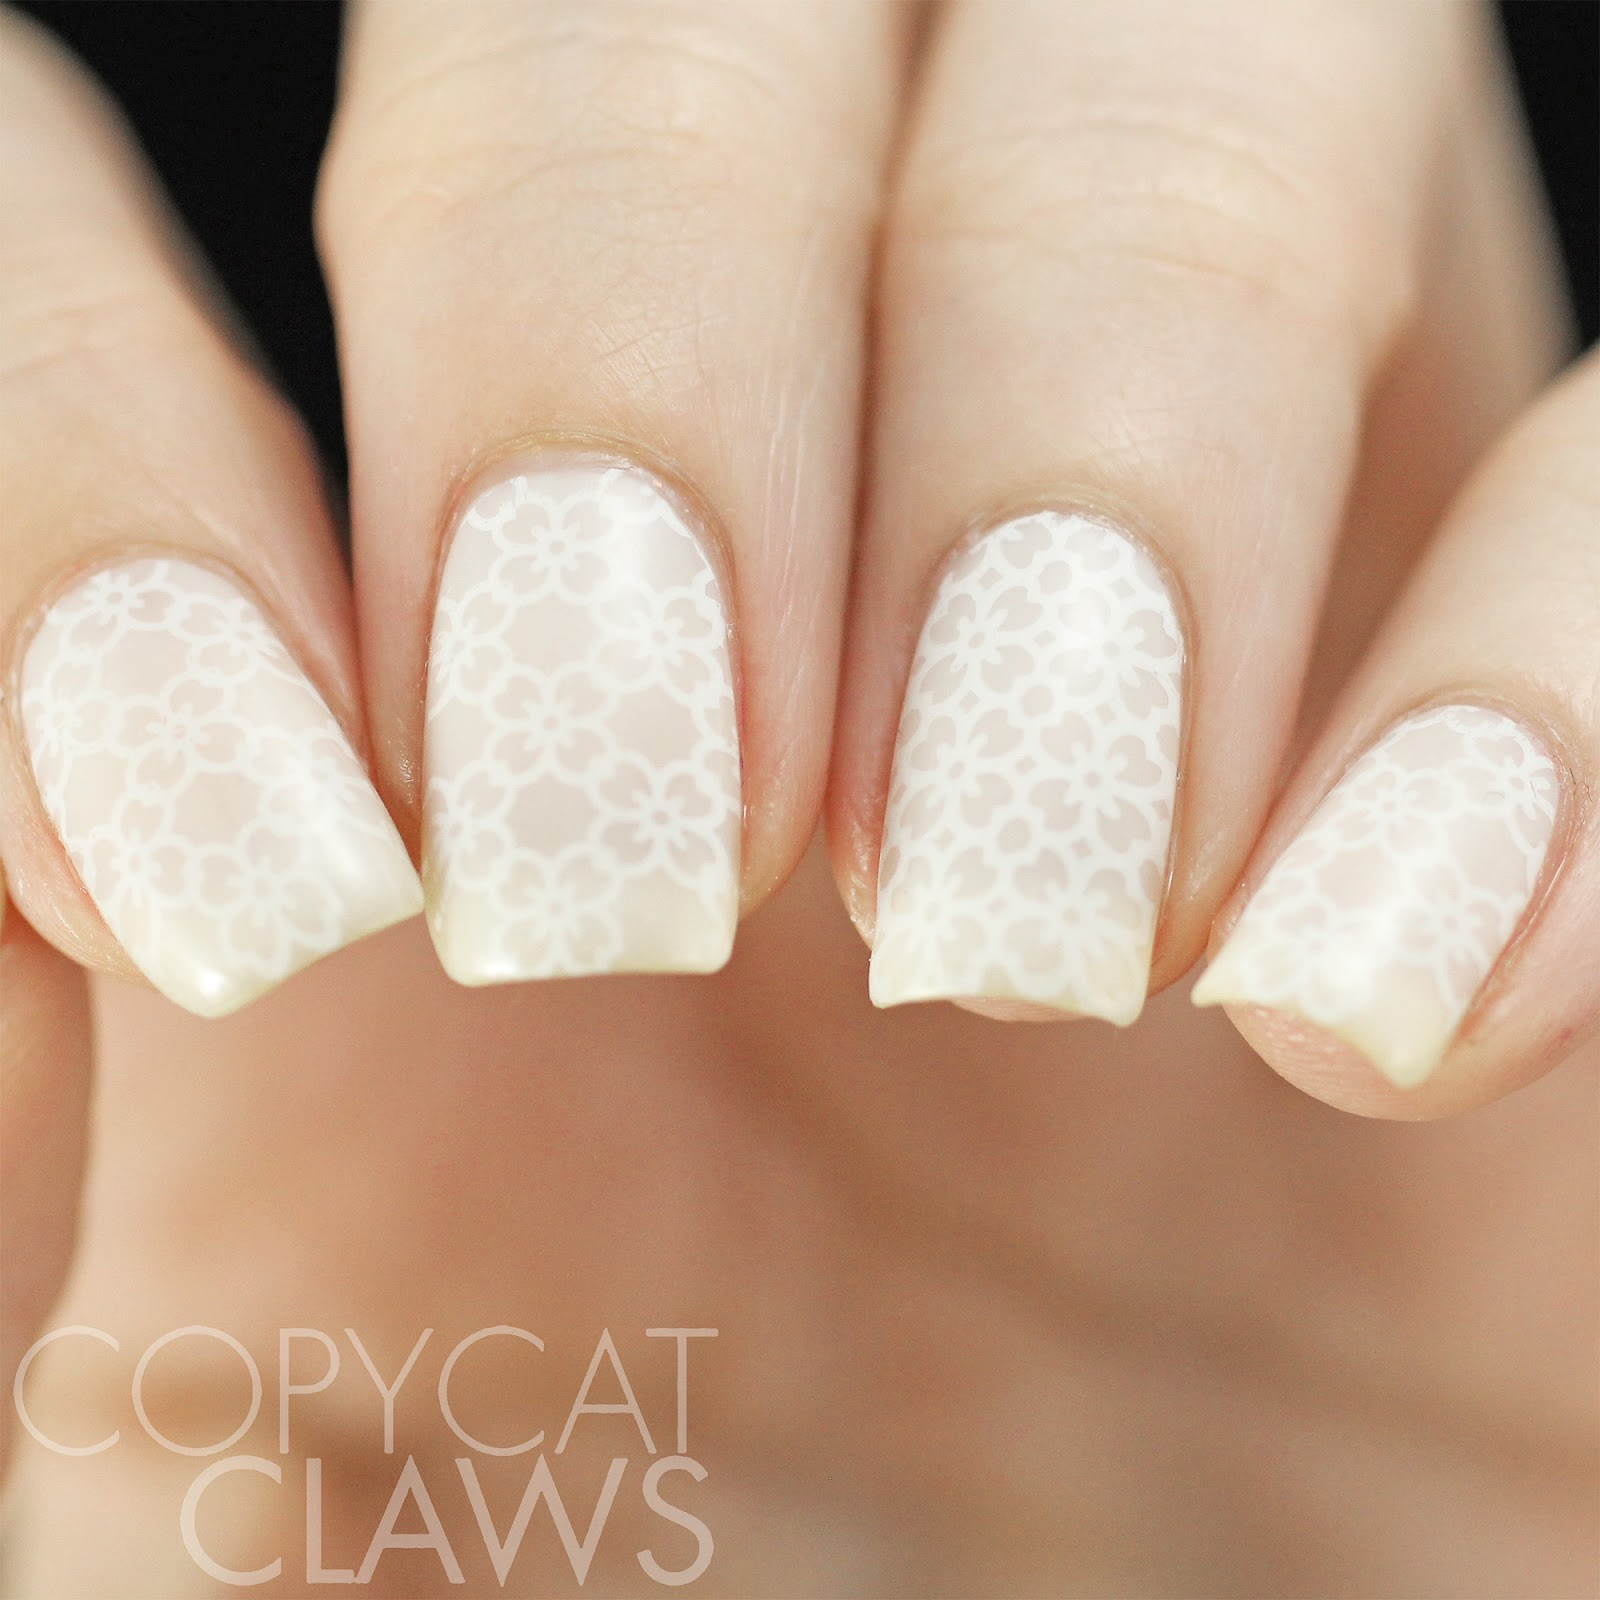 Copycat Claws: 40 Great Nail Art Ideas